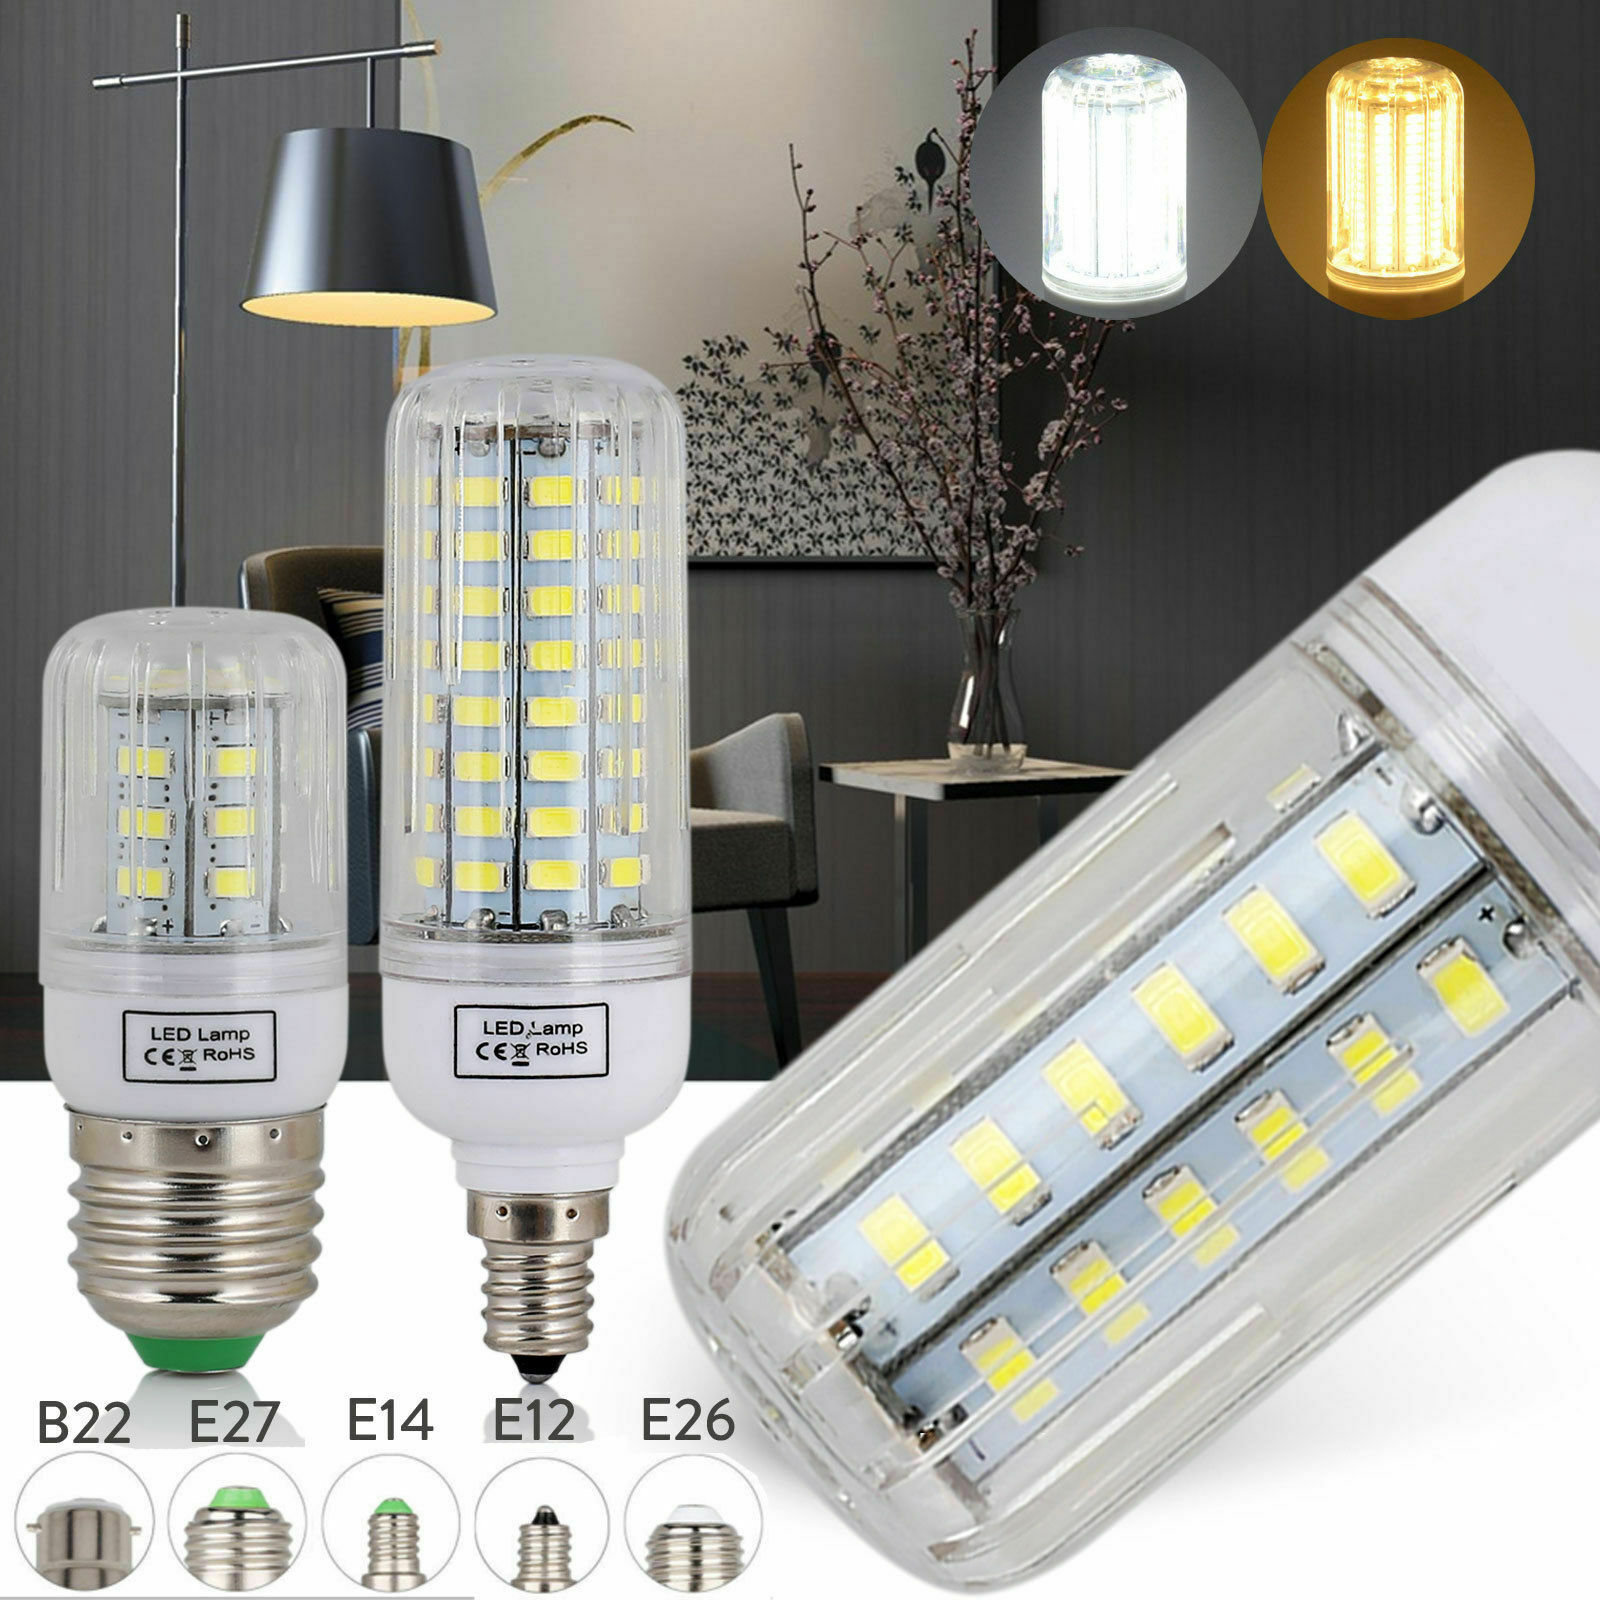 E27 E14 E12 B22 LED Corn Bulb 5730 SMD Energy Saving Incandescent 20W-160W RK184